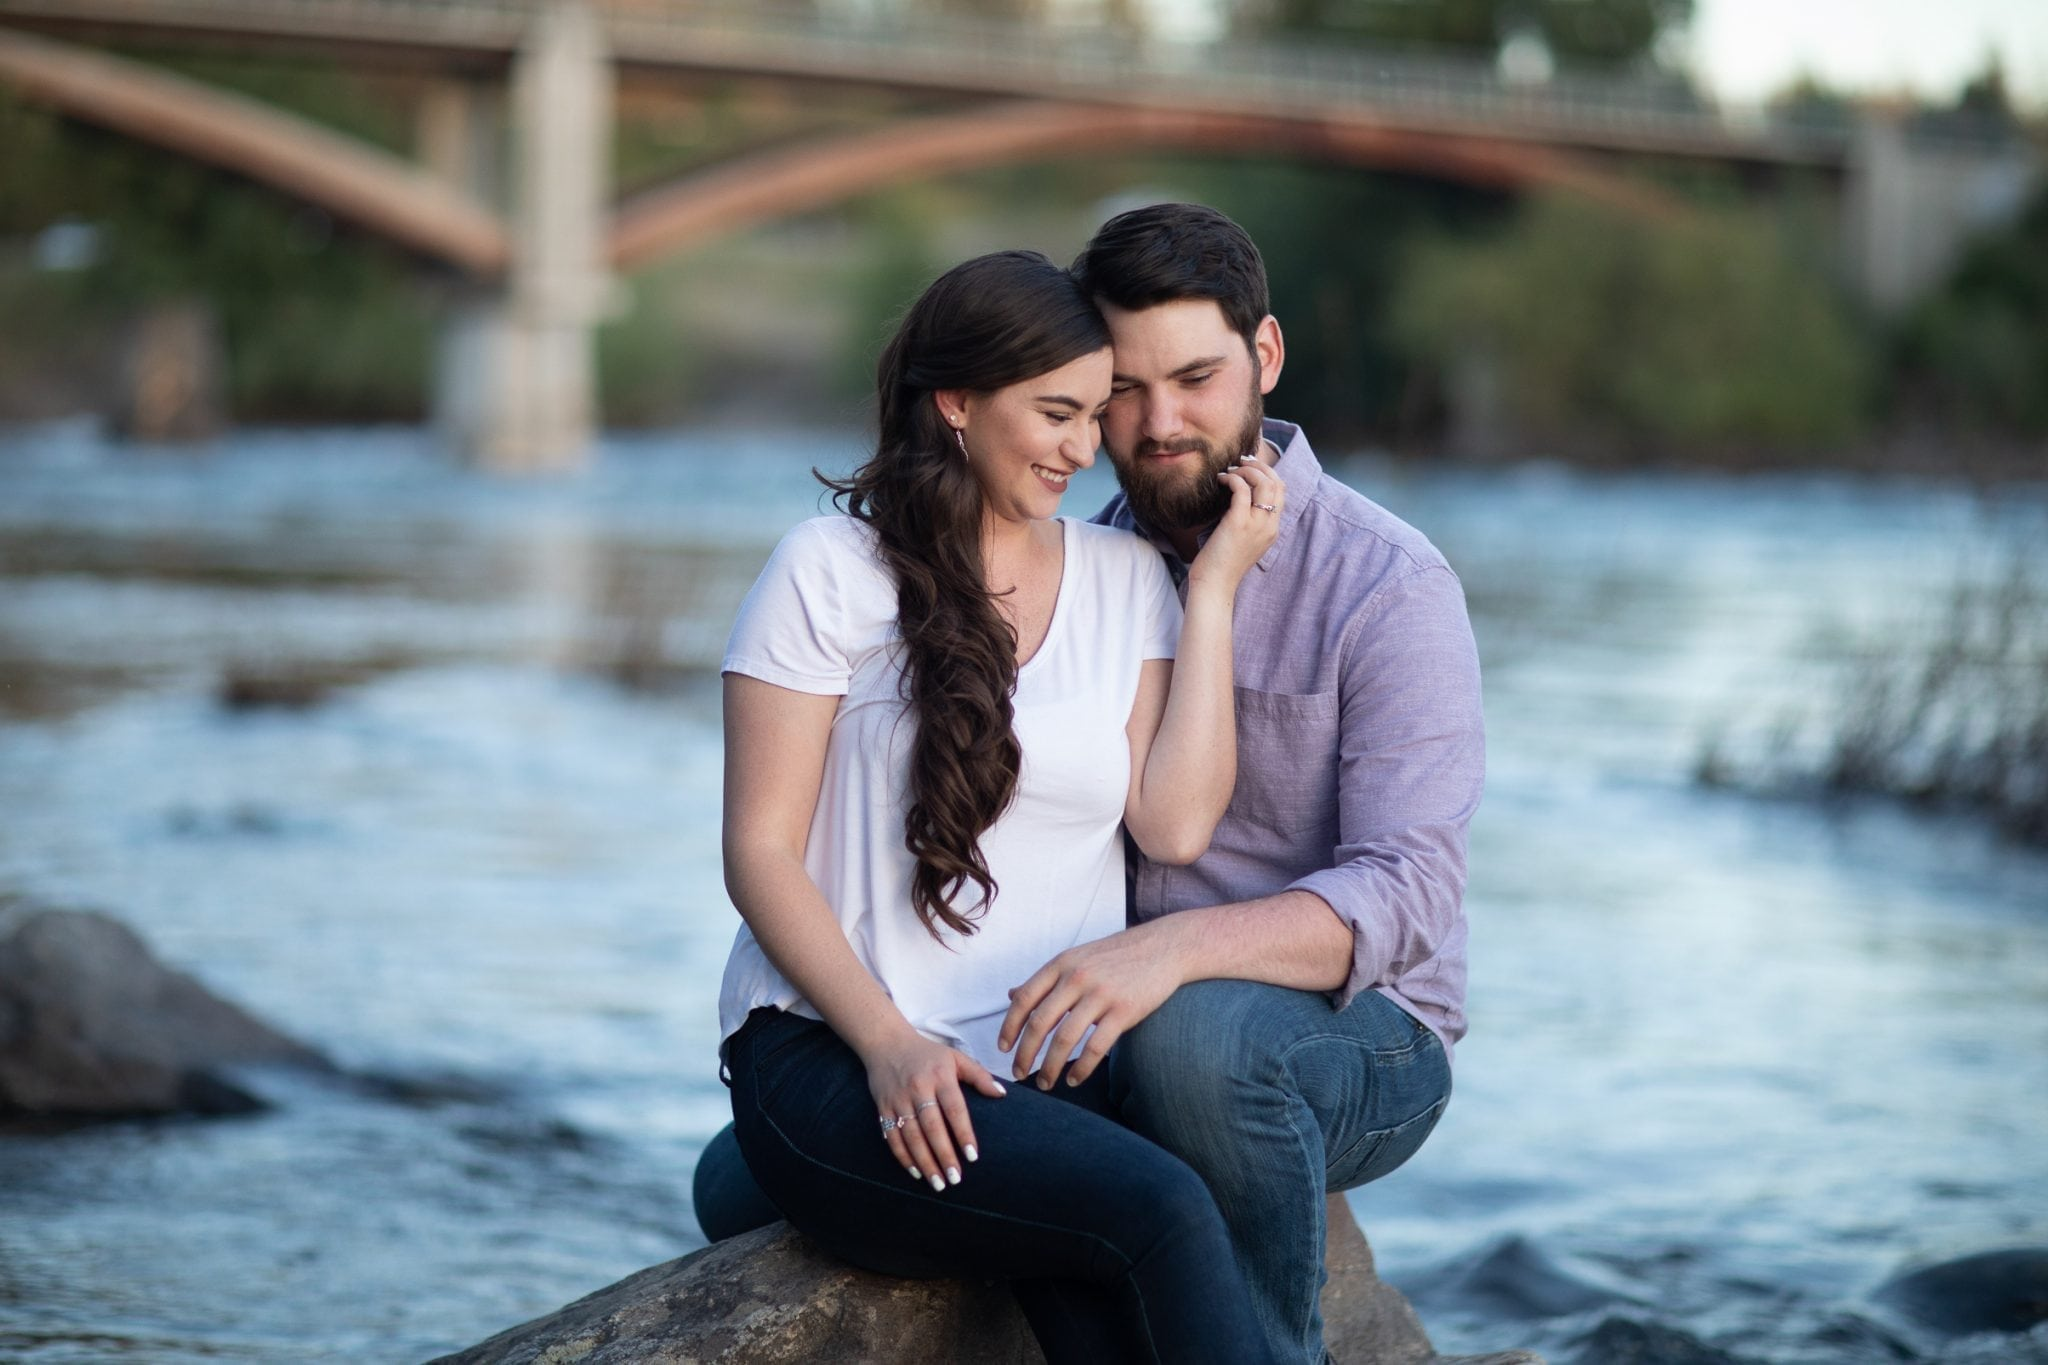 Engagement photos shoot spokane